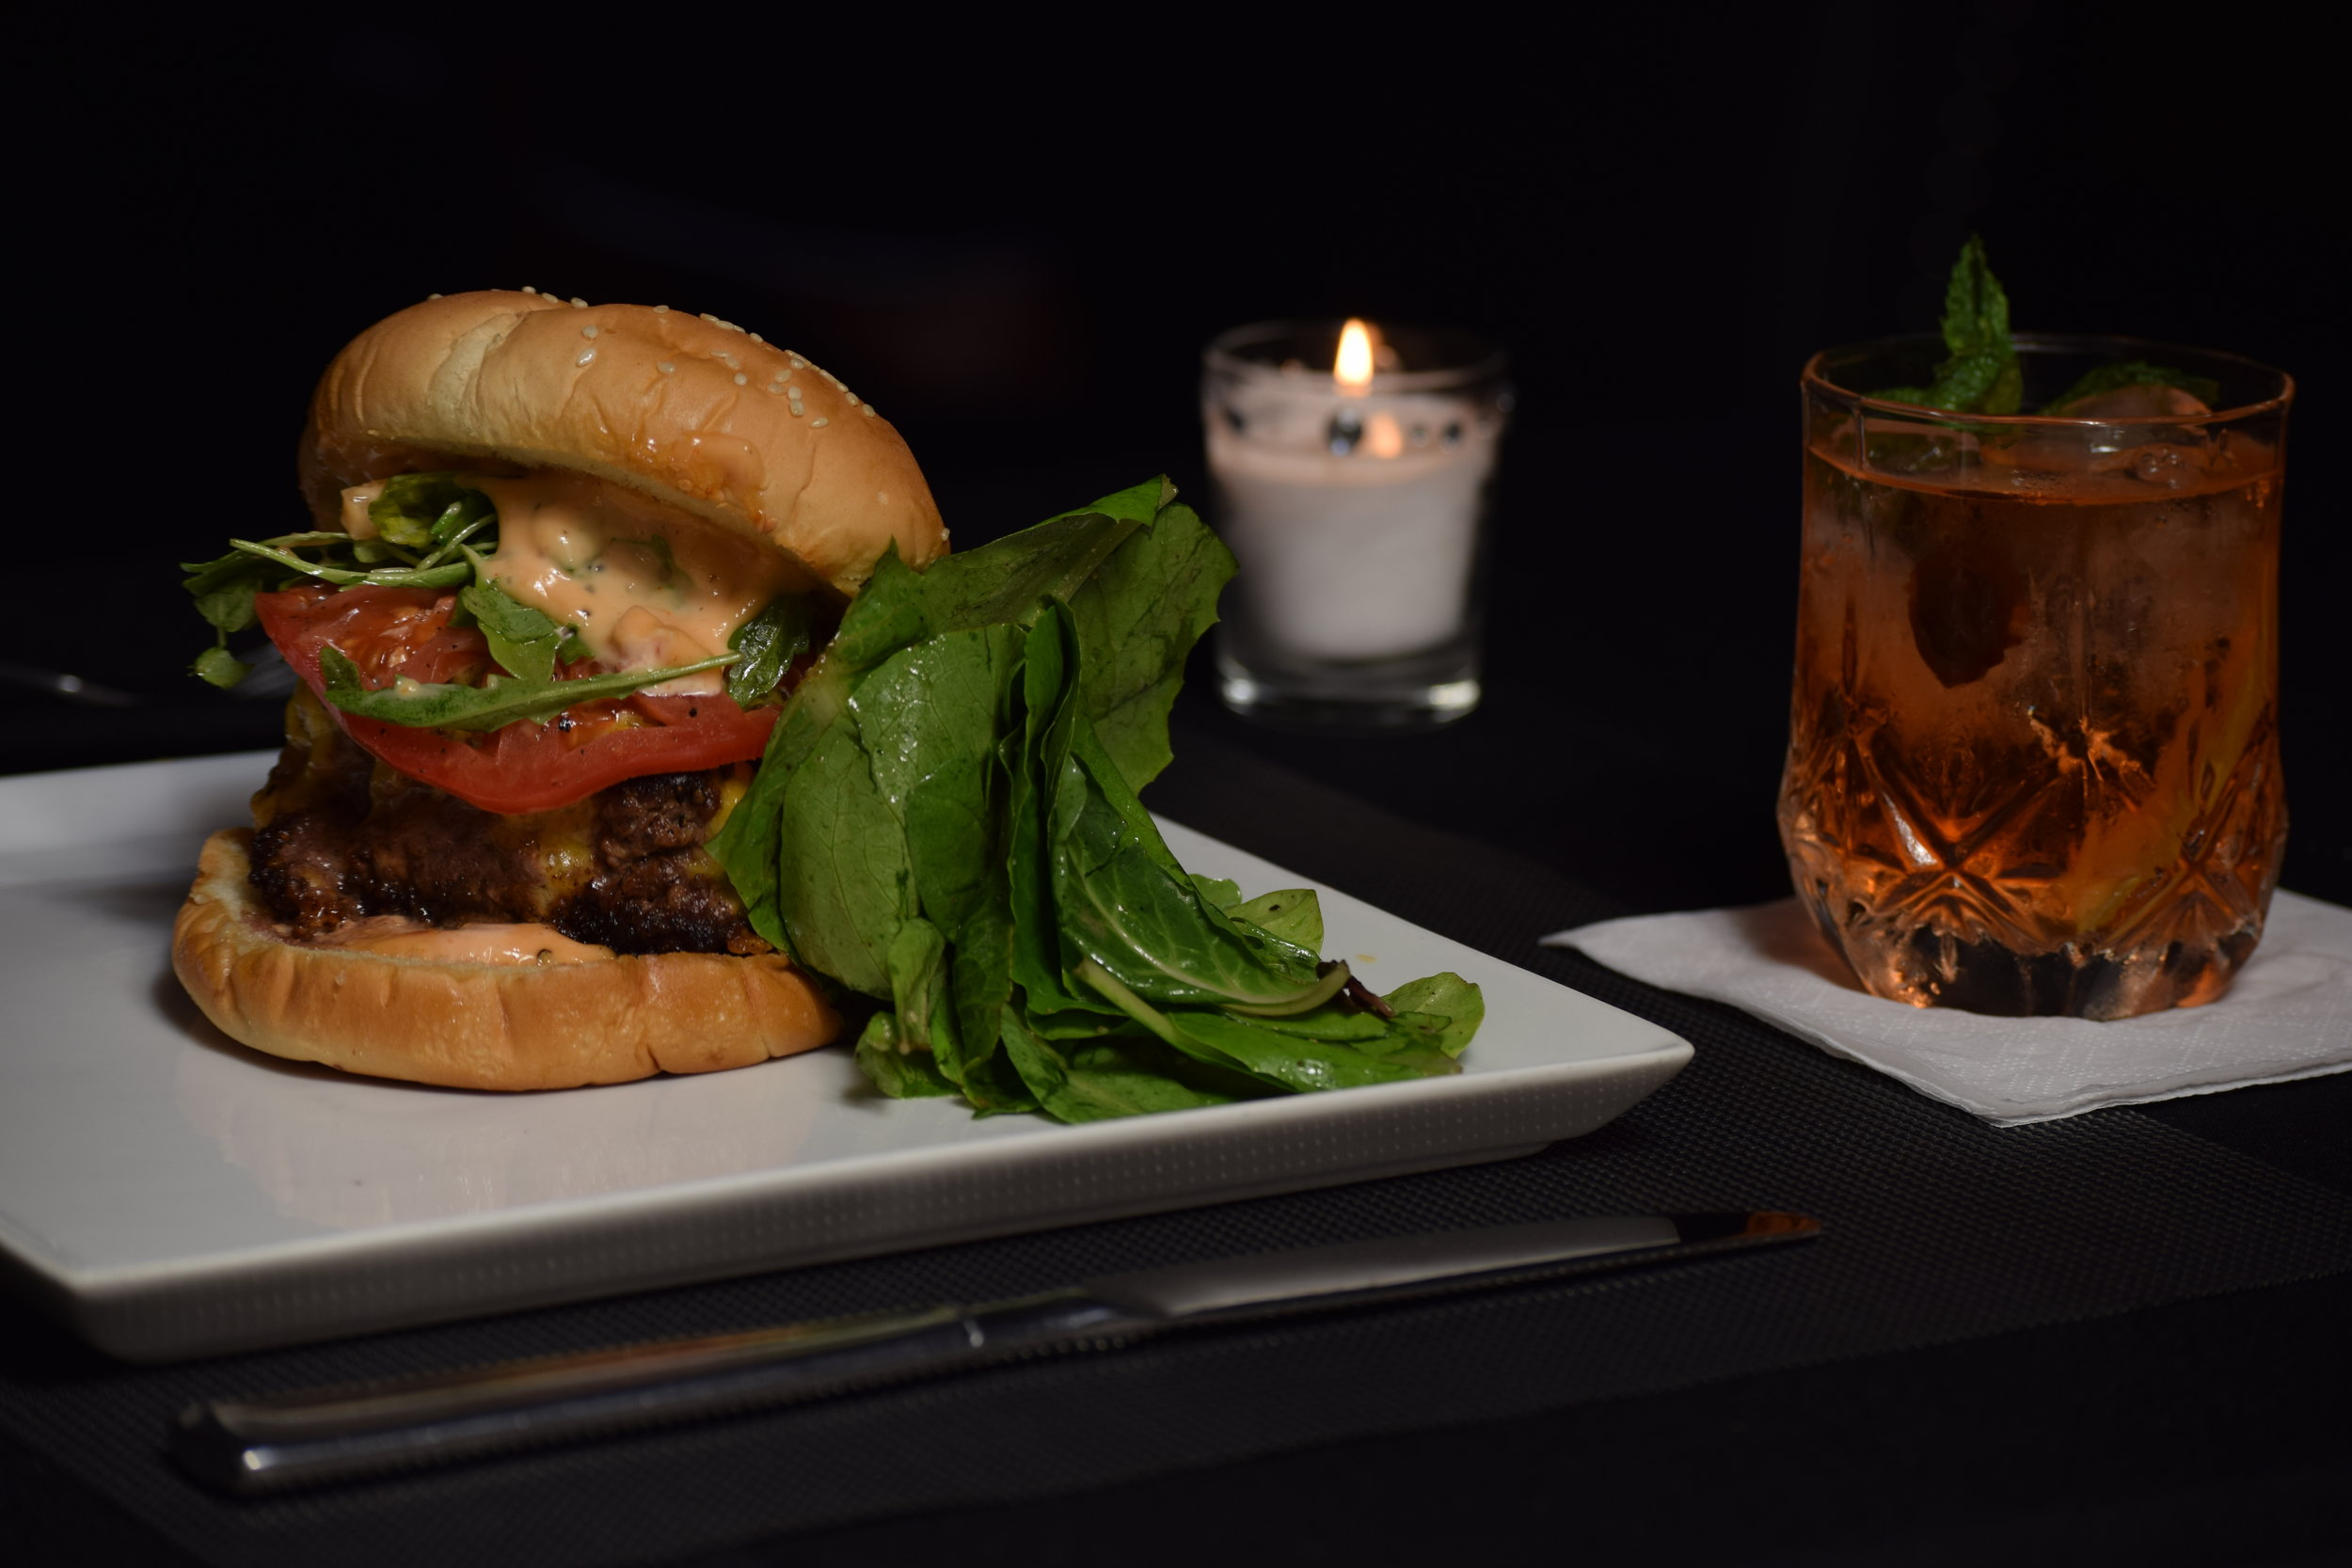 Burgers and Cocktails - Join us for our Friday Late Night Special.Cheeseburgers $5(Only in the lounge after 9pm tonight with any cocktail purchase. Must be 21 or older. Please, no outside beverages in the lounge. Quantities are limited. )